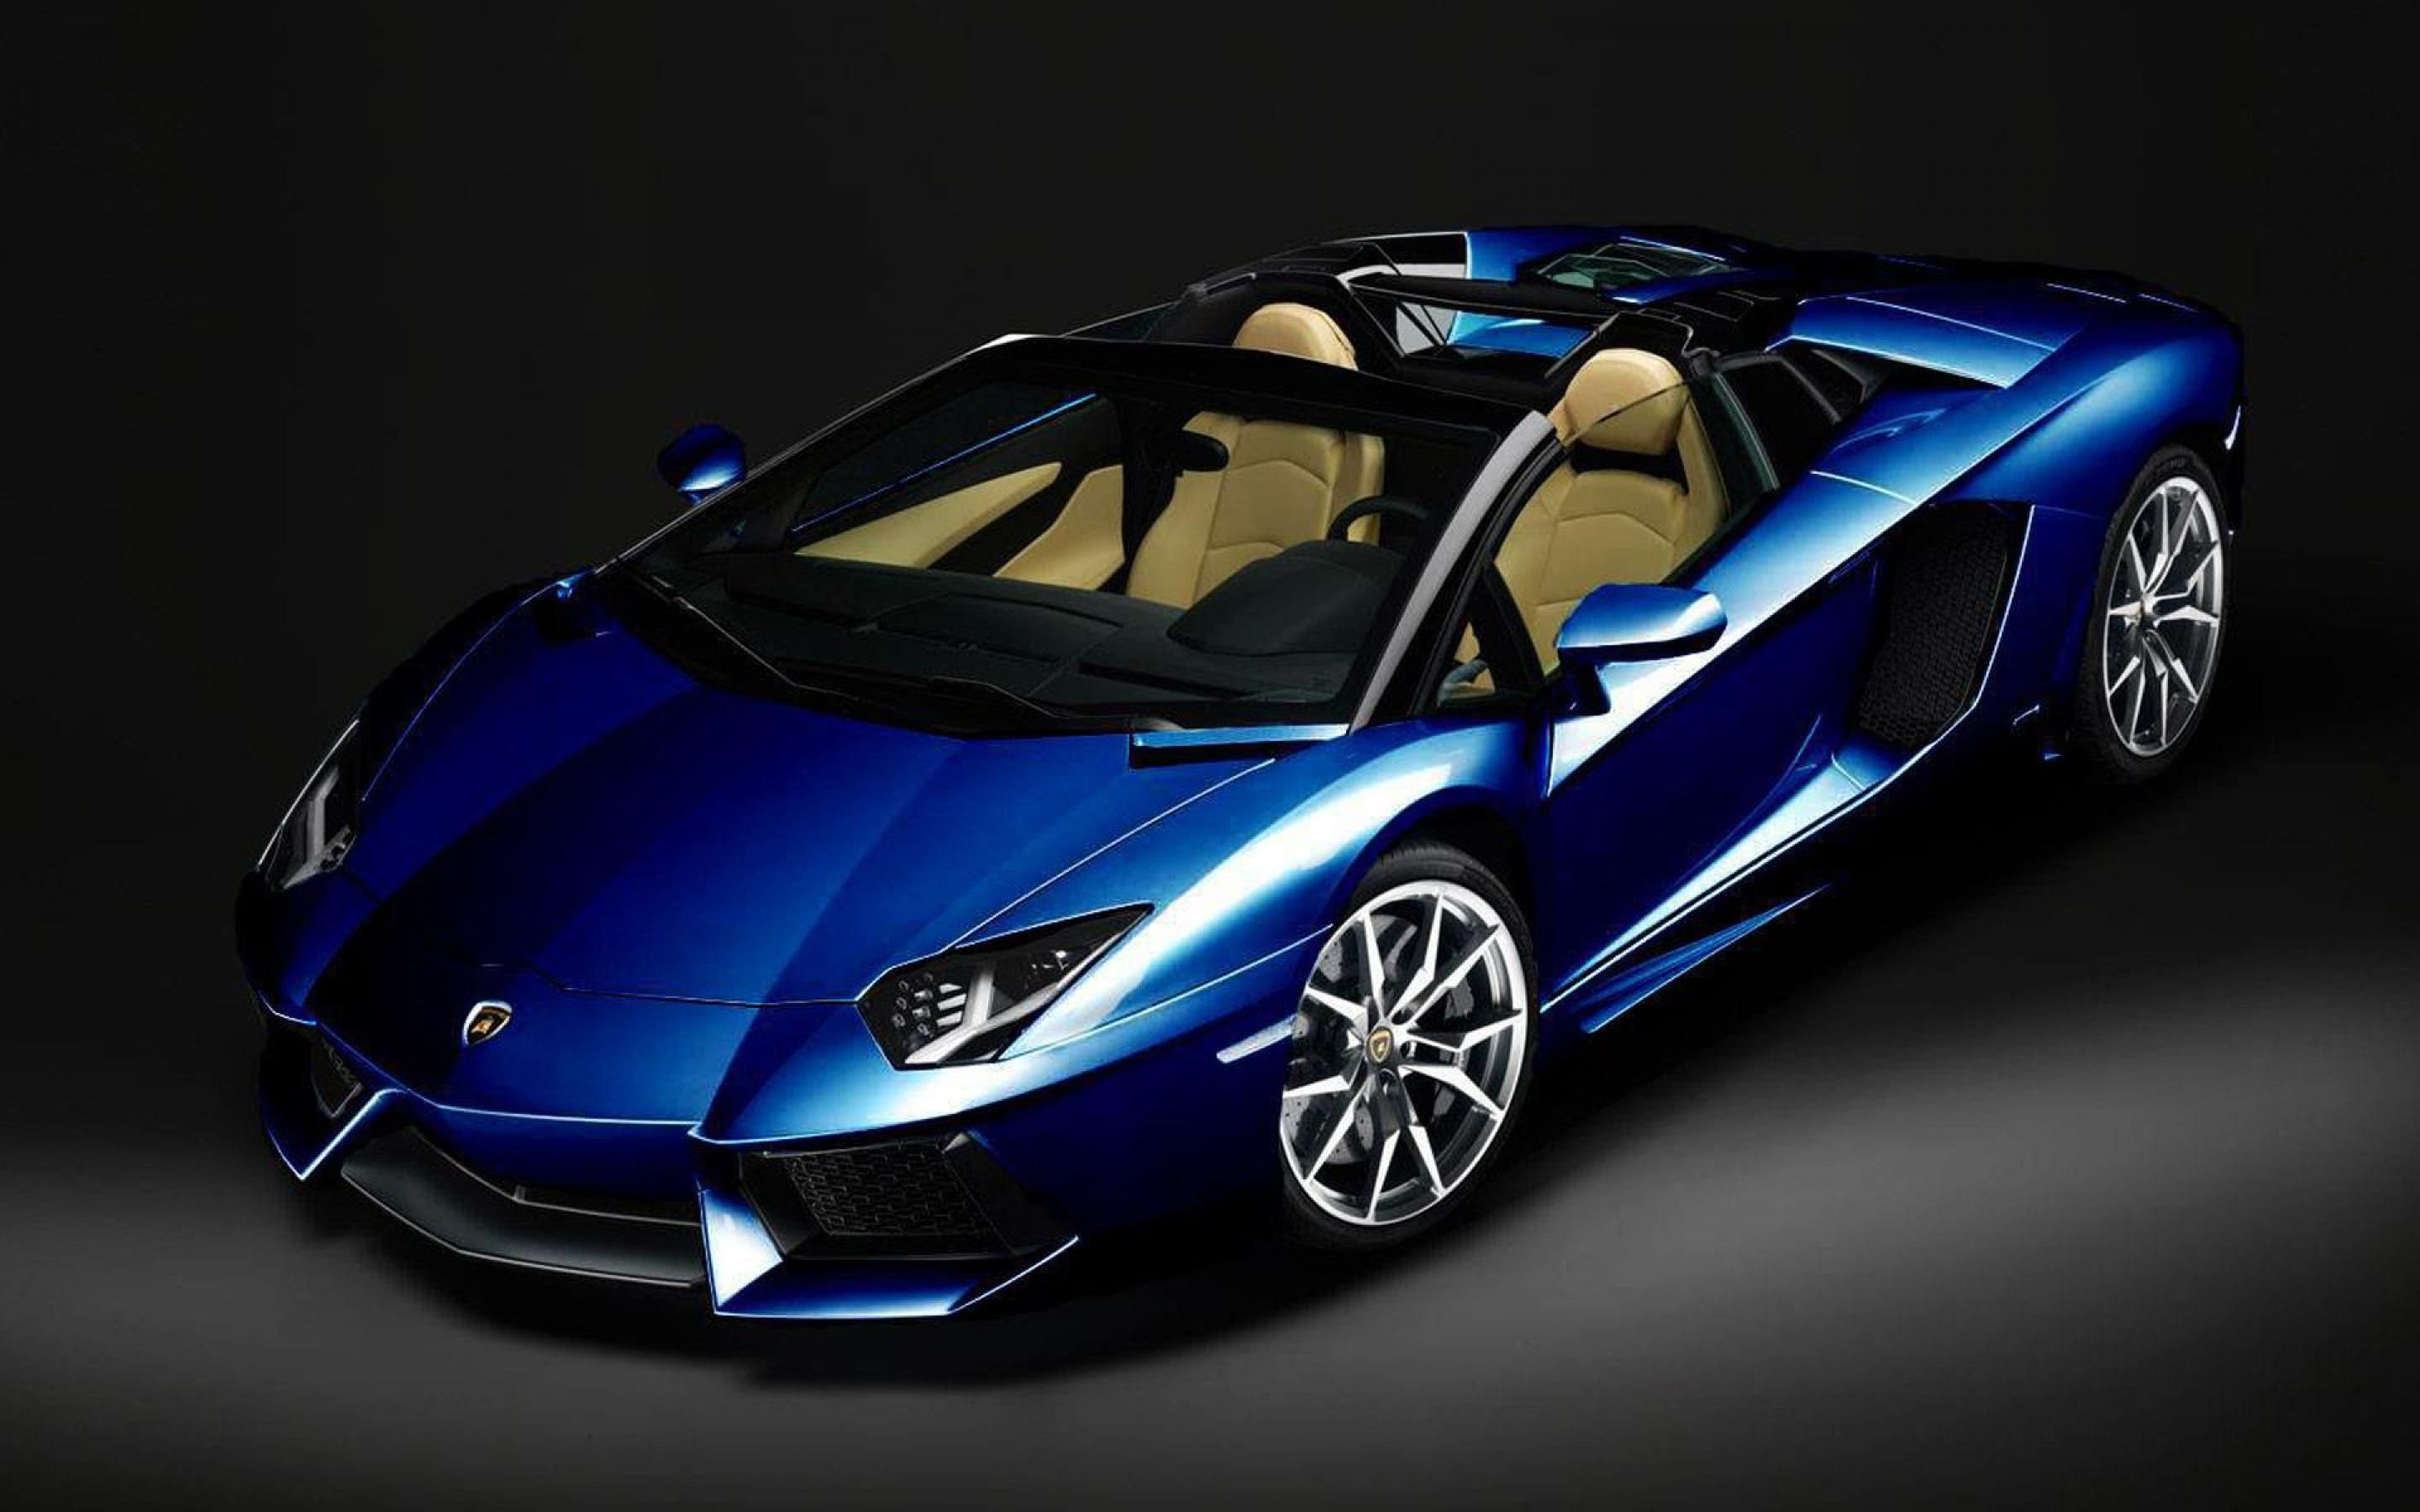 Blue Lamborghini Wallpapers Full Hd Free Download With Images